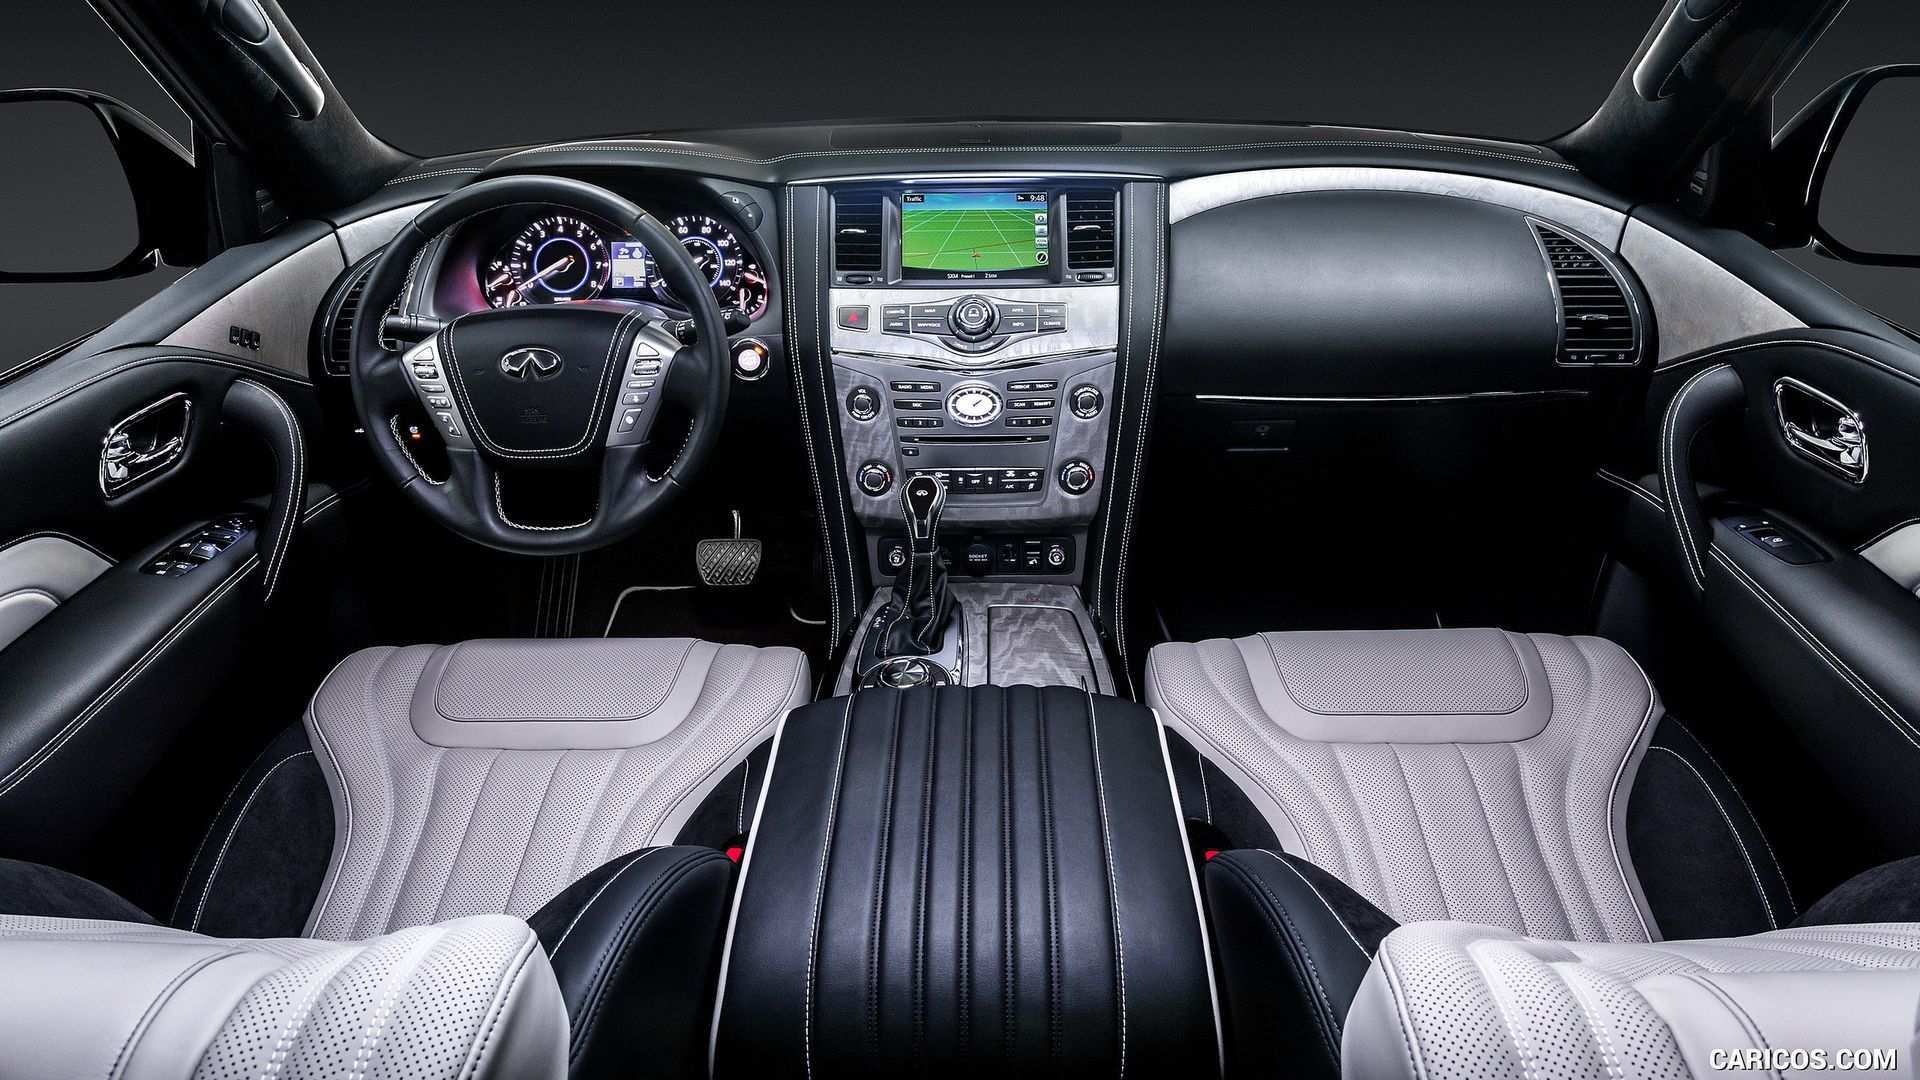 79 New Infiniti Qx80 2019 Concept And Review